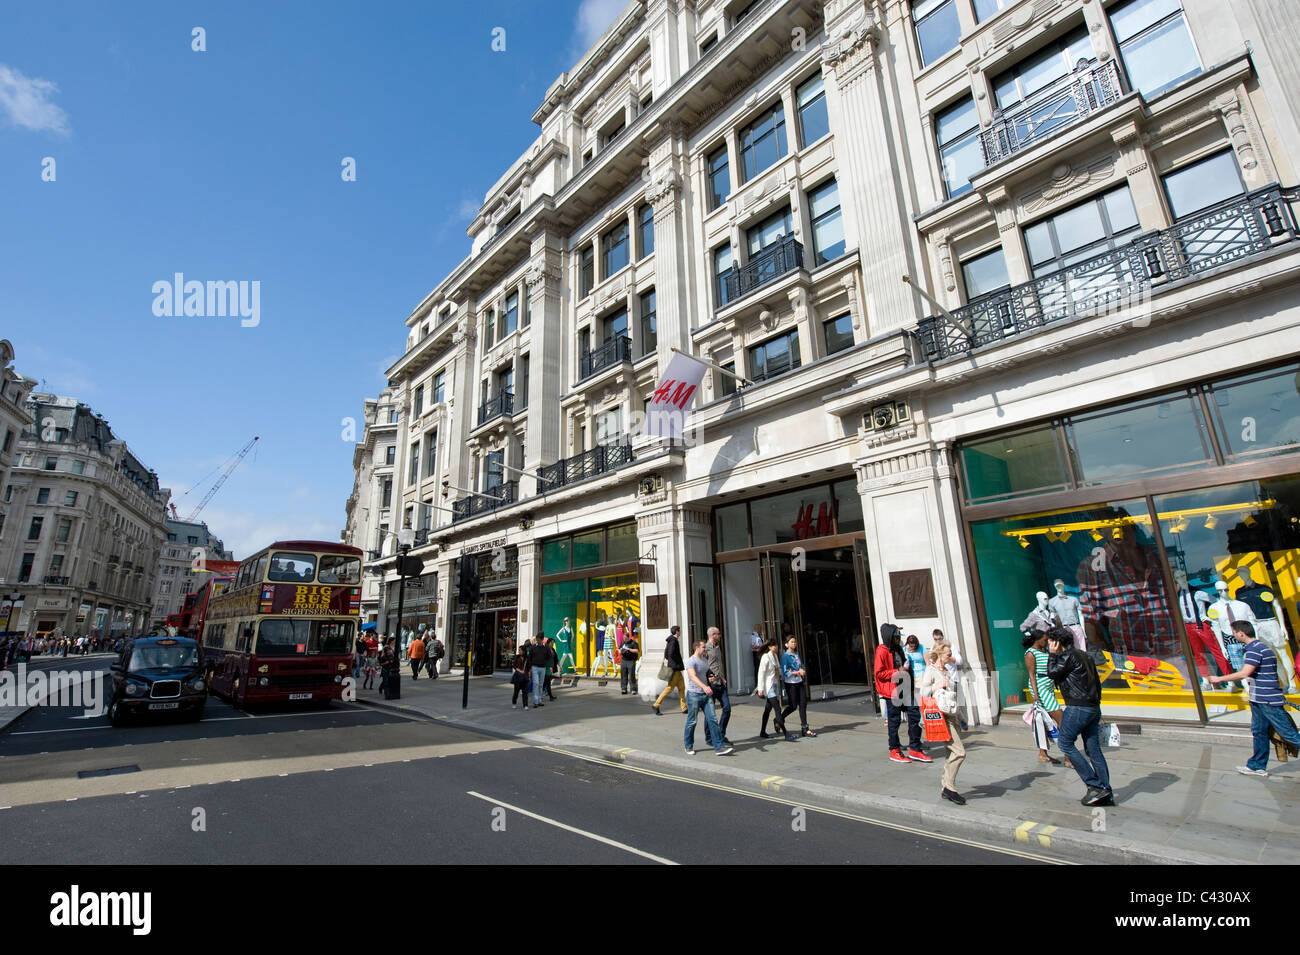 The storefront of the high street retailer H&M on Regent Street, London. (Editorial use only). - Stock Image